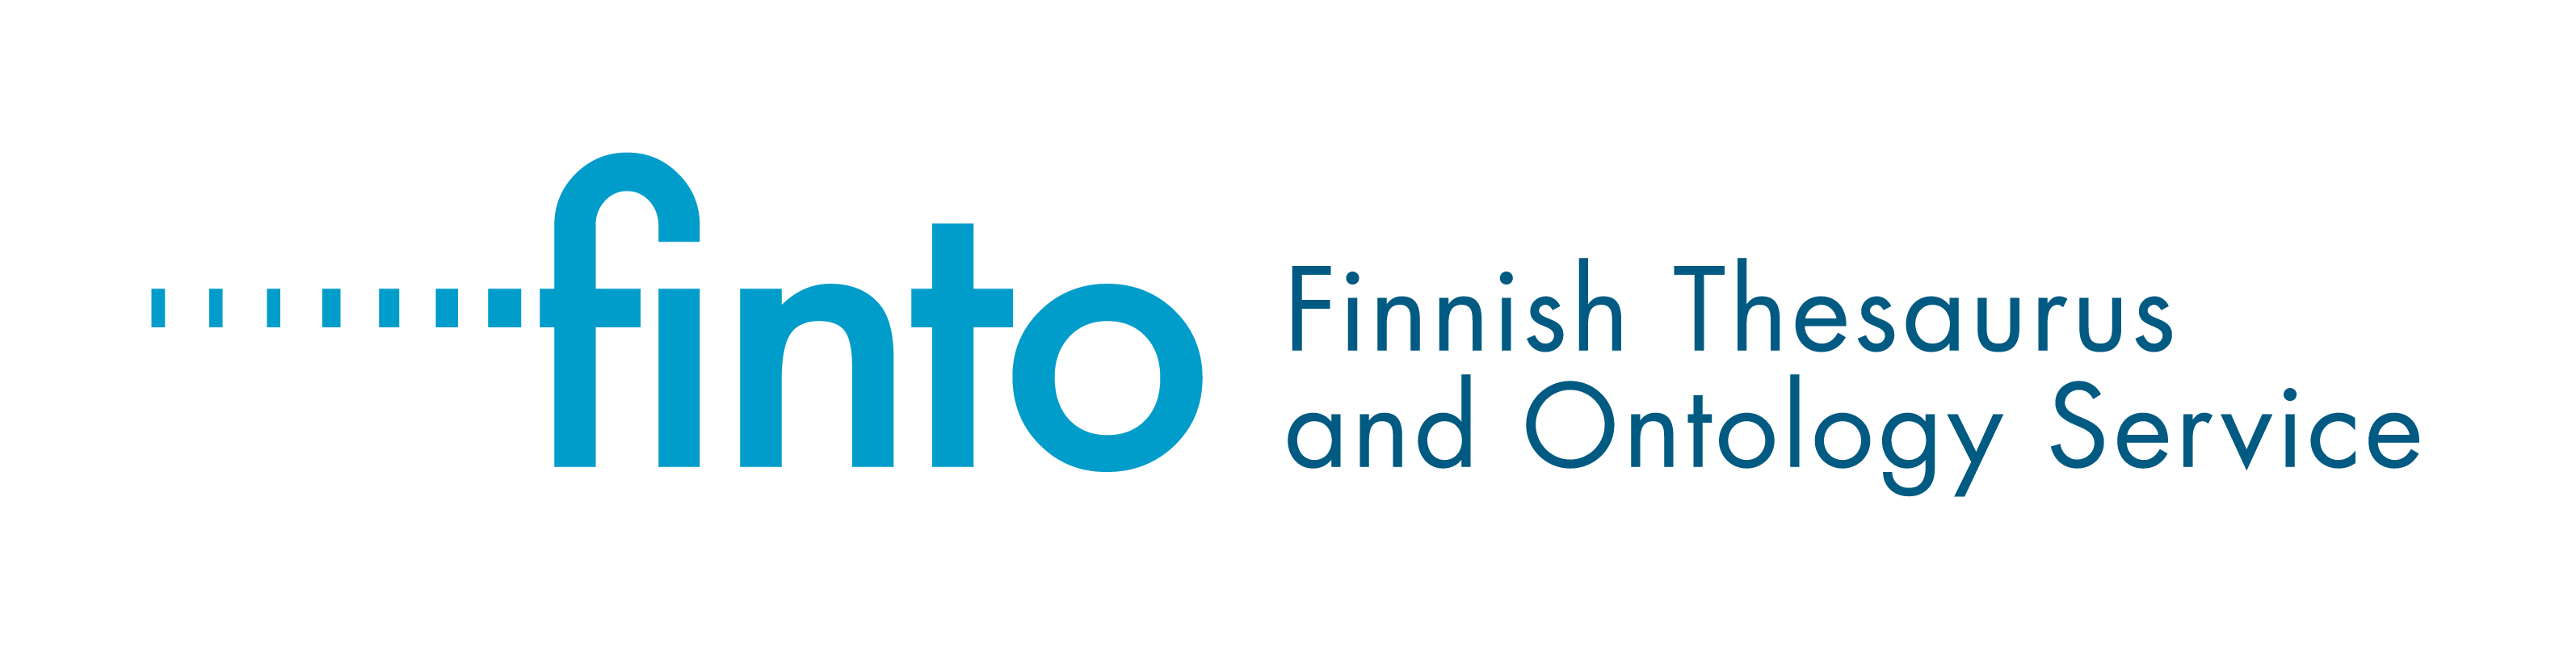 Finto - Finnish thesaurus and ontology service